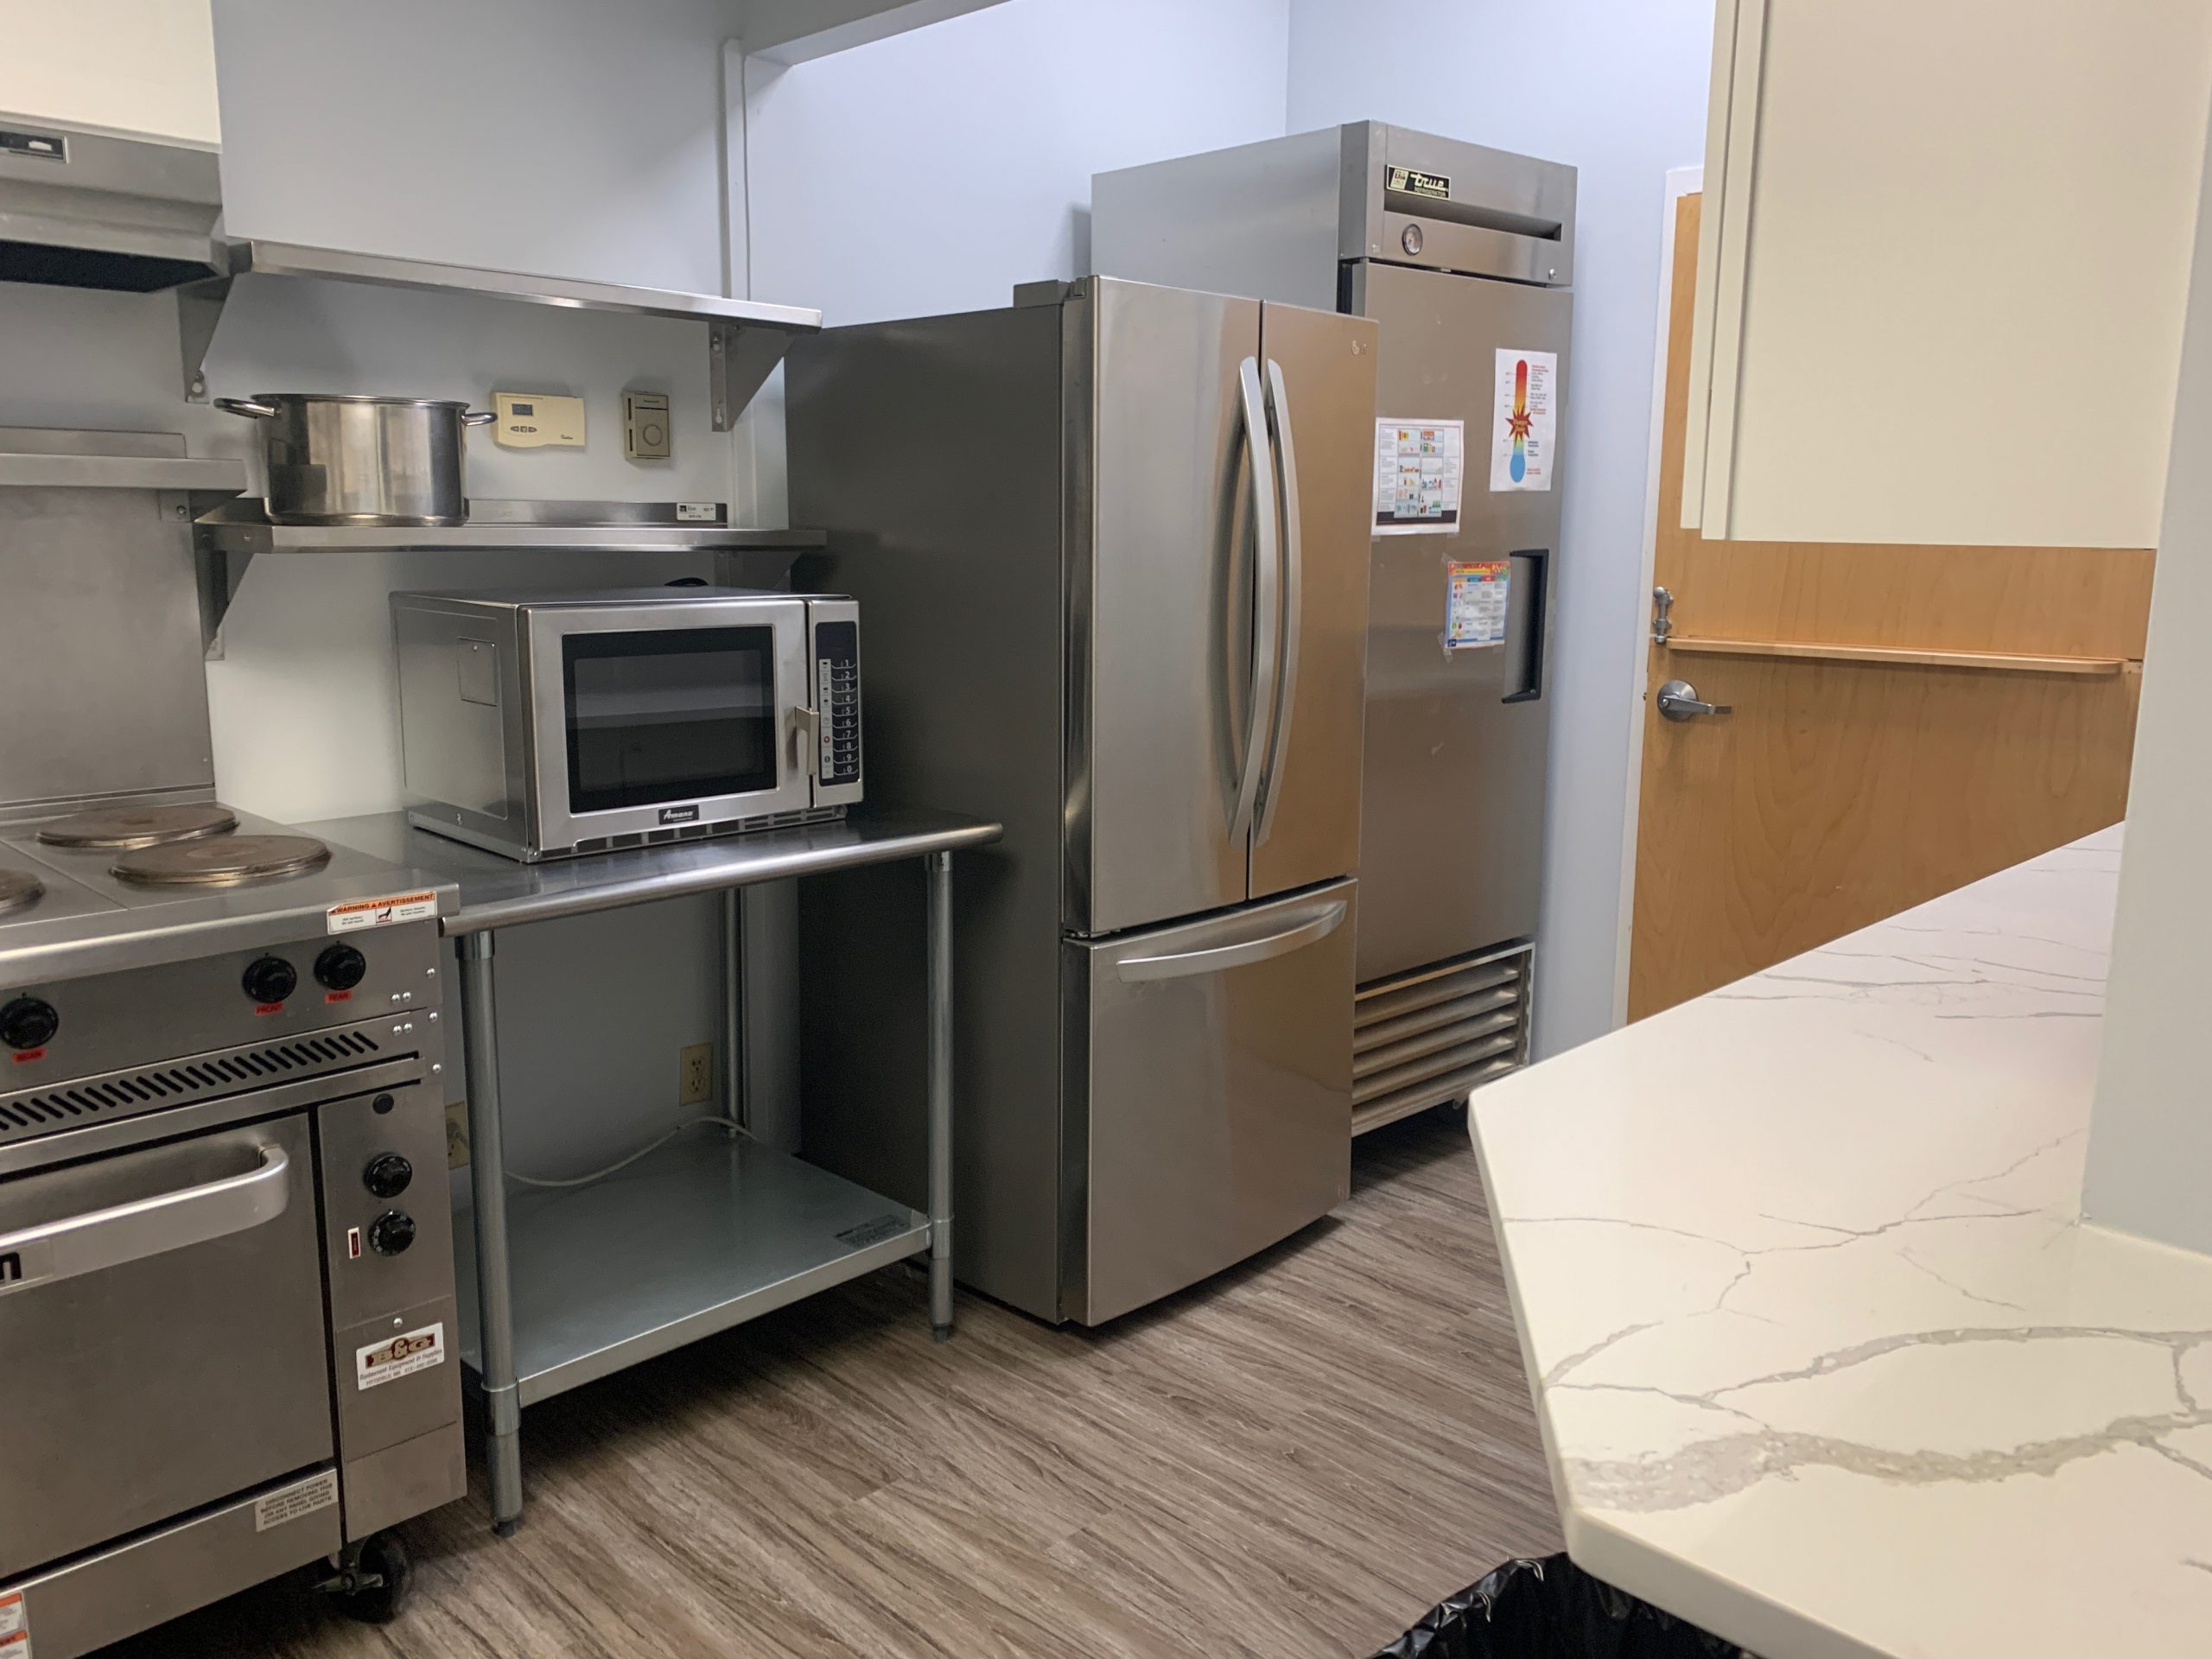 ABCD North End/West End Neighborhood Service Center New Kitchen Photo